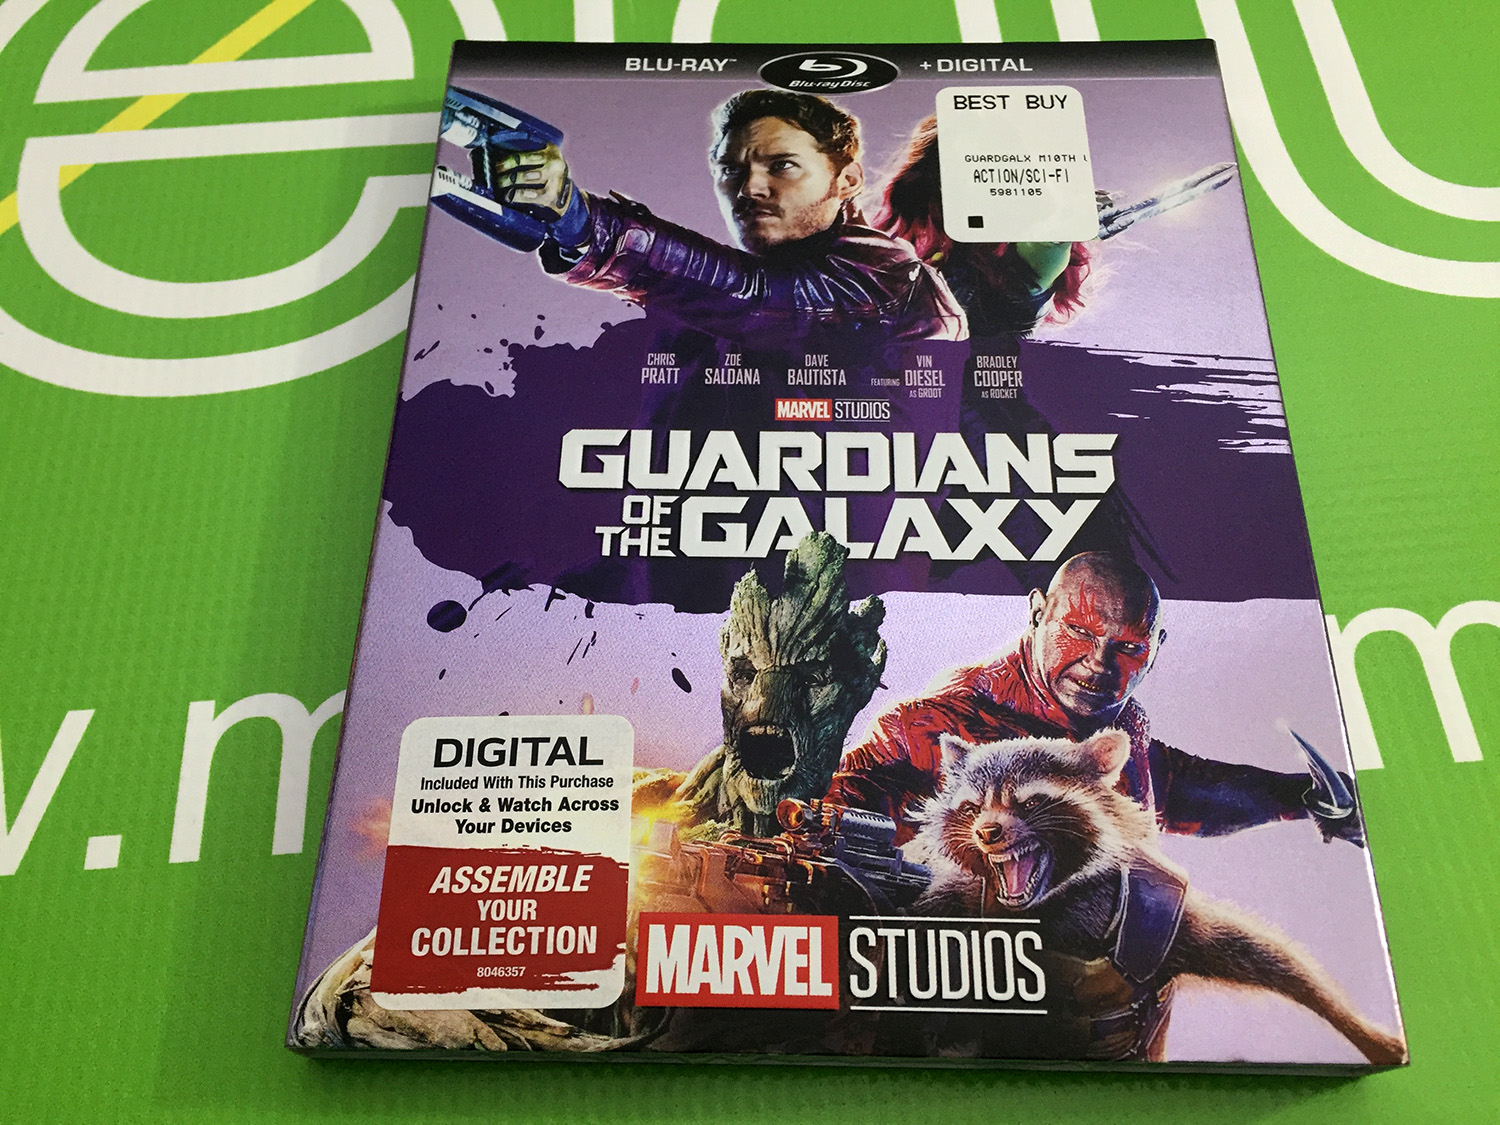 Marvel Studios Guardians of the Galaxy Blu Ray and Digital